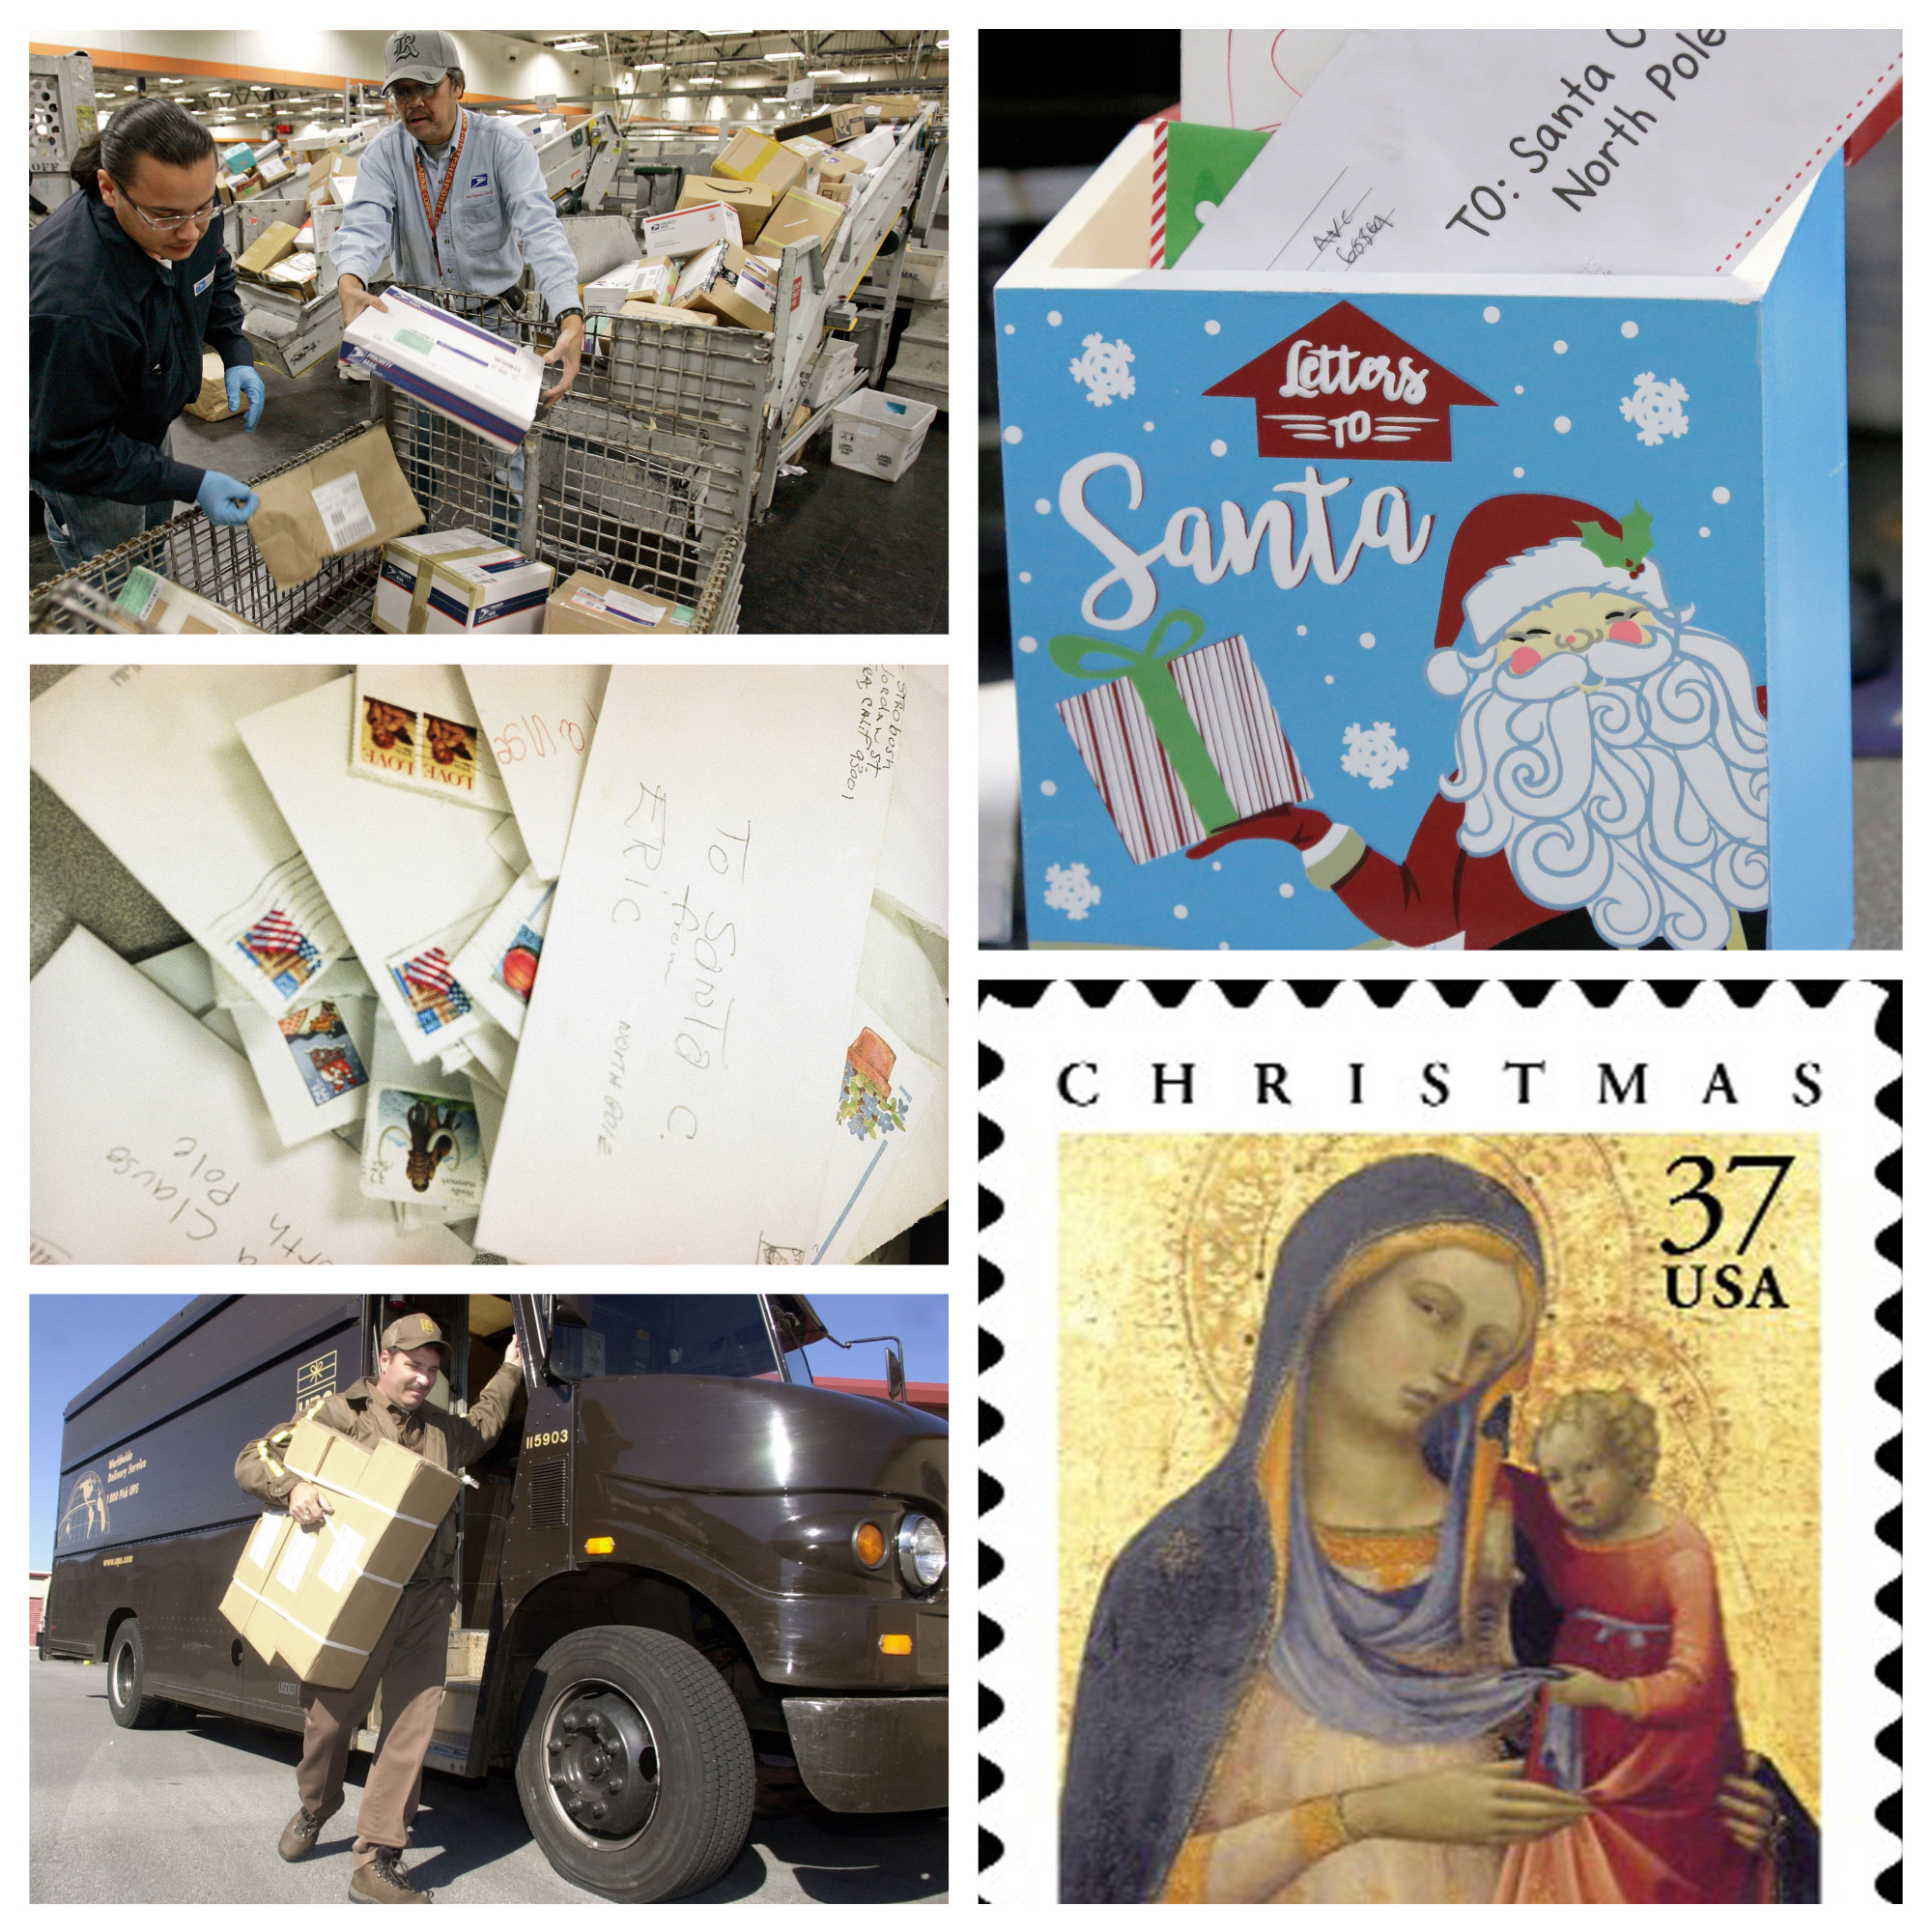 Usps Deadlines For Christmas 2021 Holiday Mailing And Shipping Deadlines Tips More For 2019 Holidays Usps Ups Amazon Fedex Cleveland Com